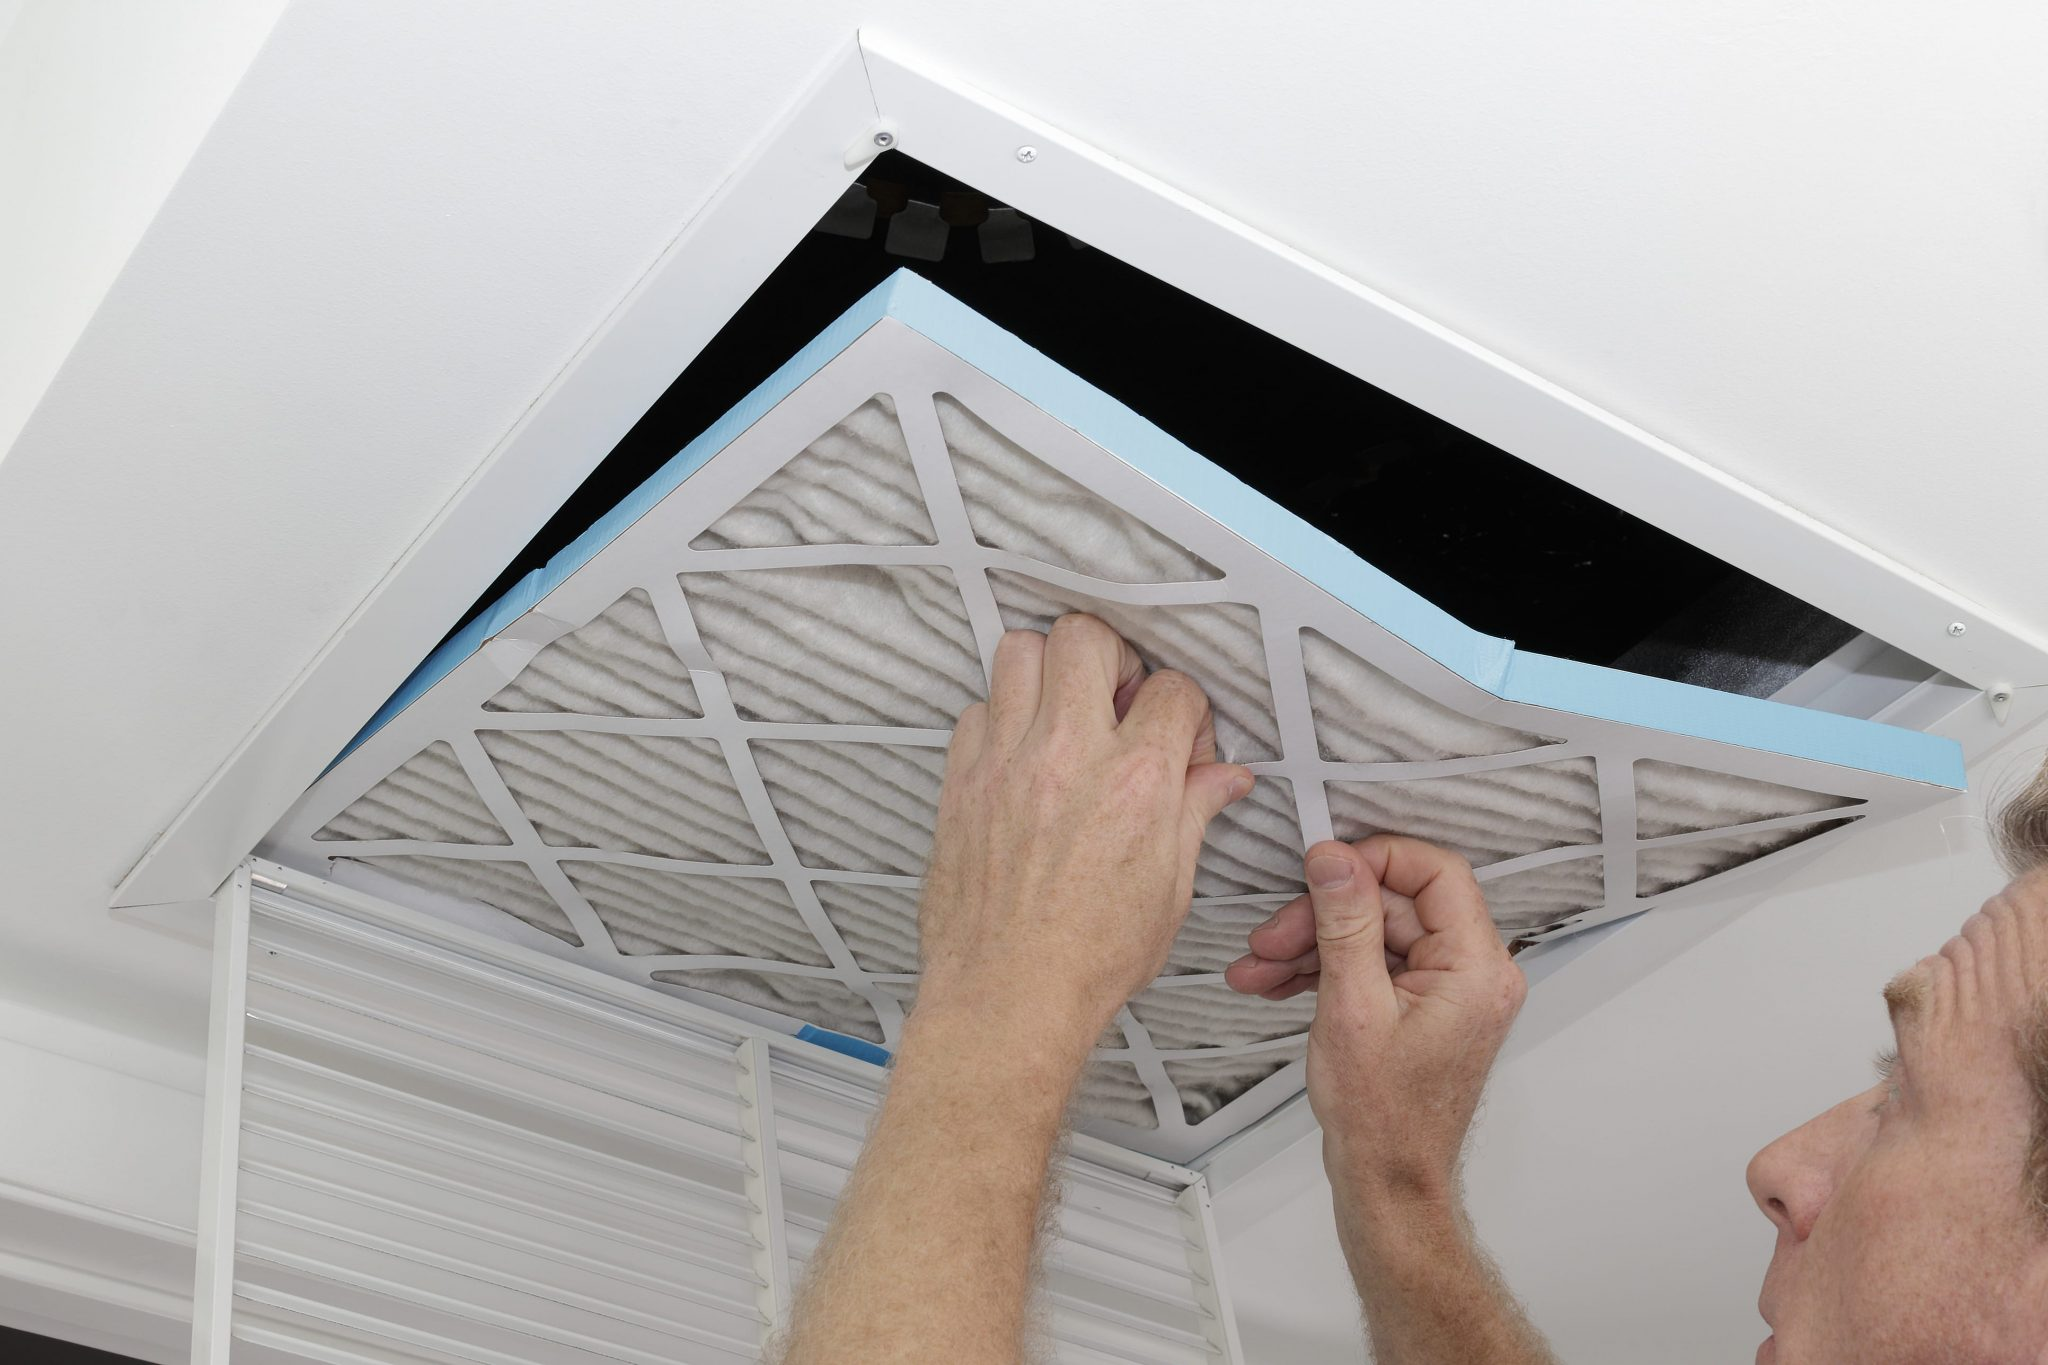 Person removing an old dirty air filter from a ceiling intake vent of a home HVAC system to improve indoor air quality.